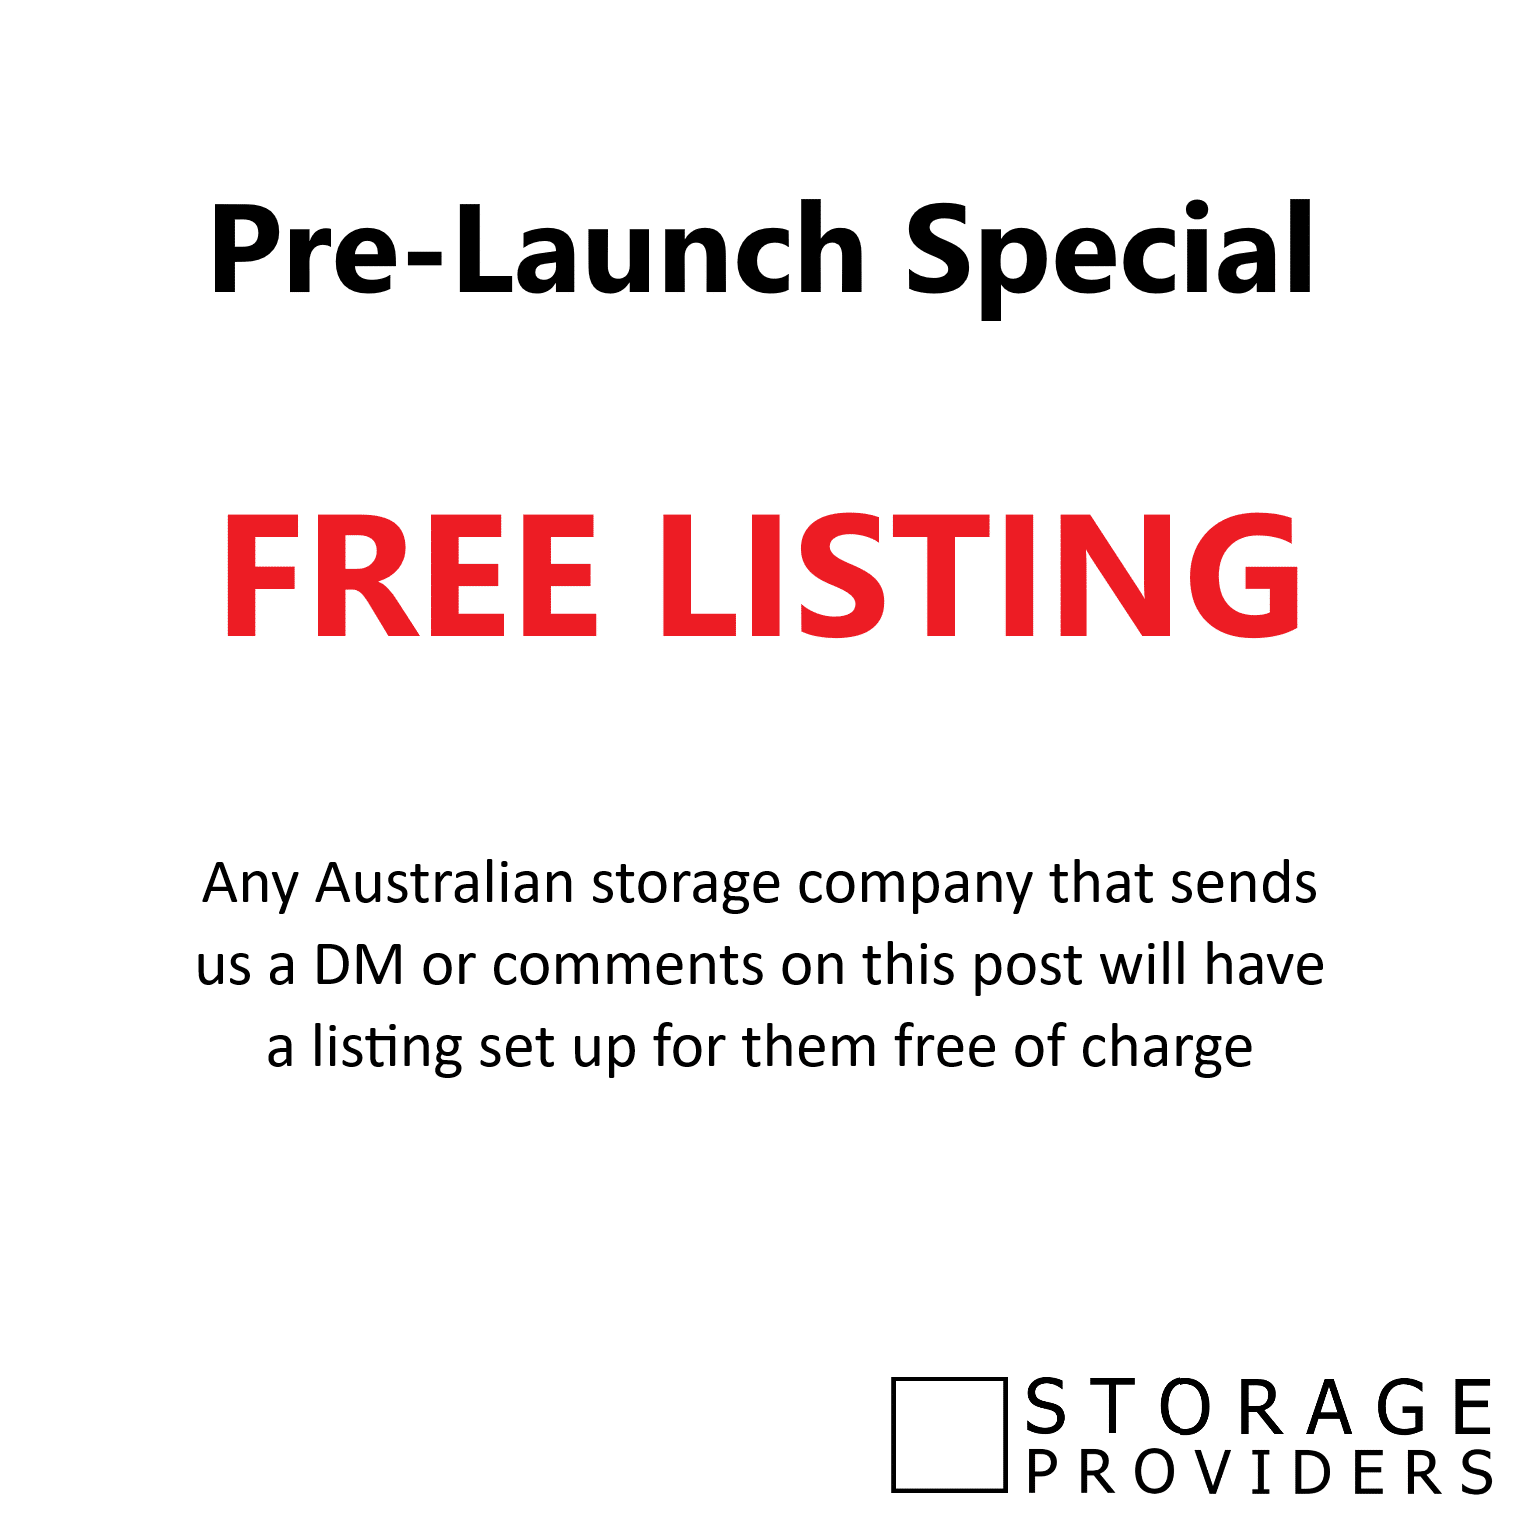 Free Listing on storageproviders.com.au